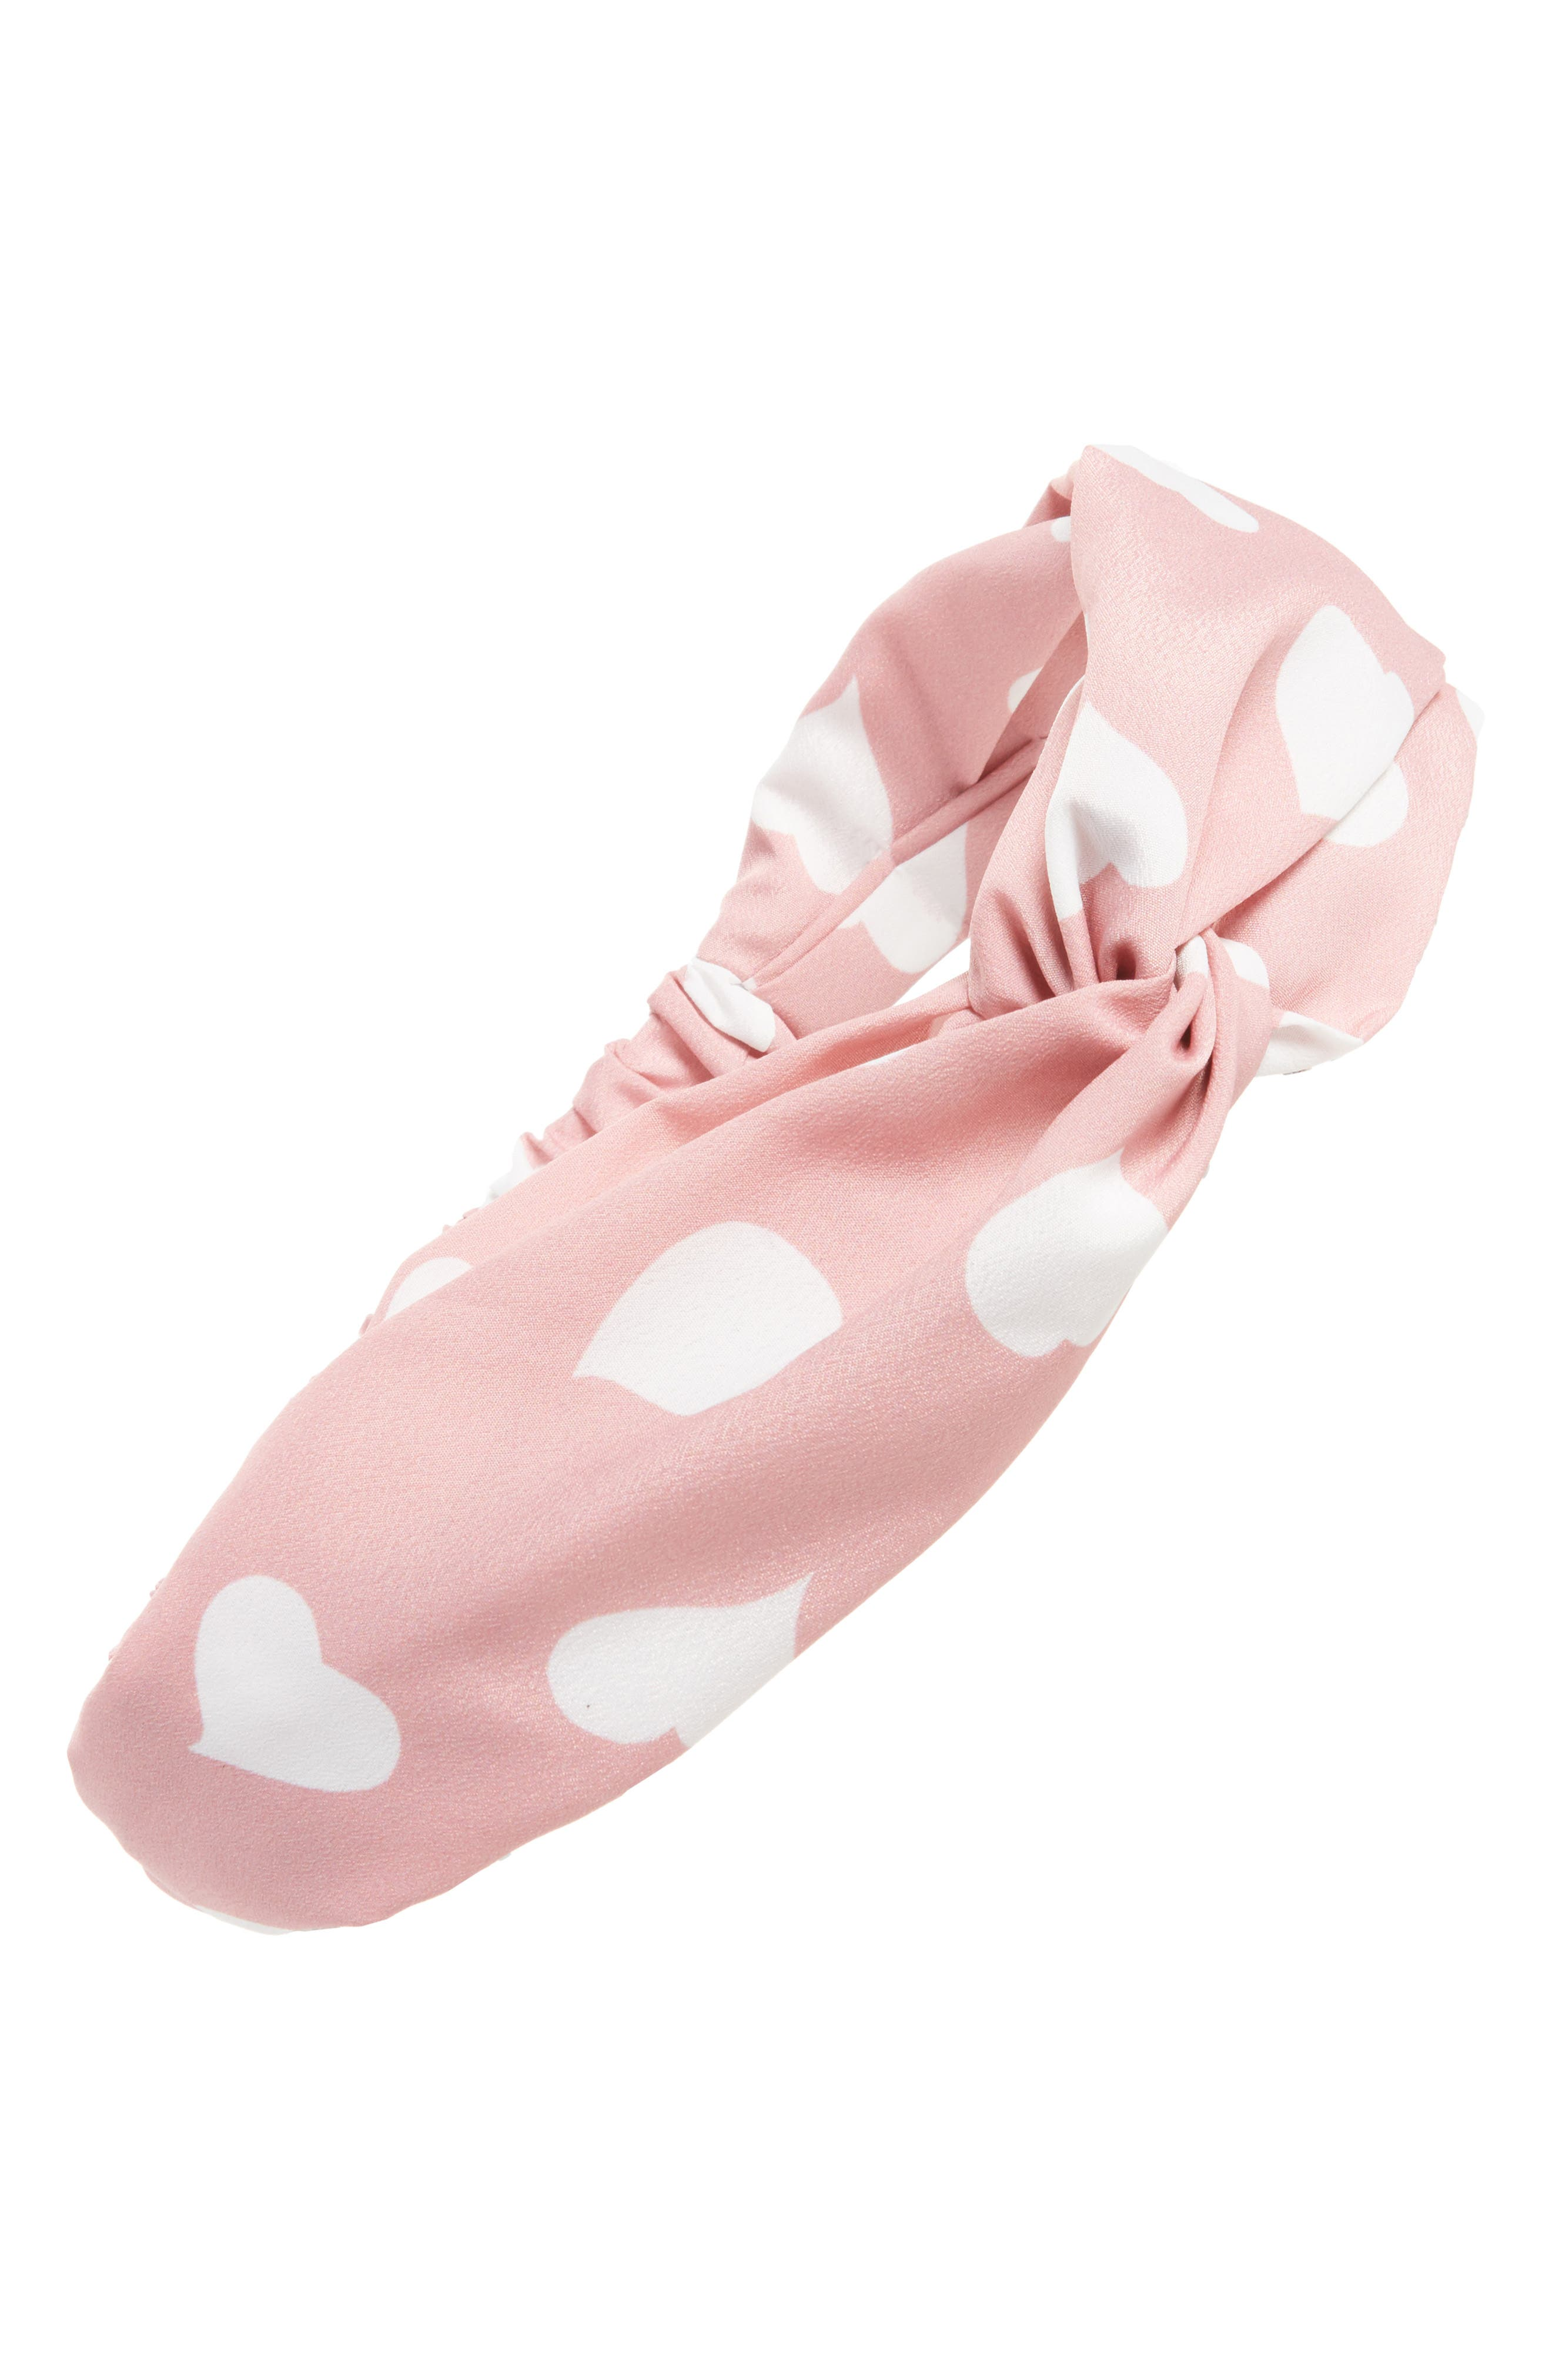 Heart Dots Twist Head Wrap,                             Main thumbnail 1, color,                             Pink/ White